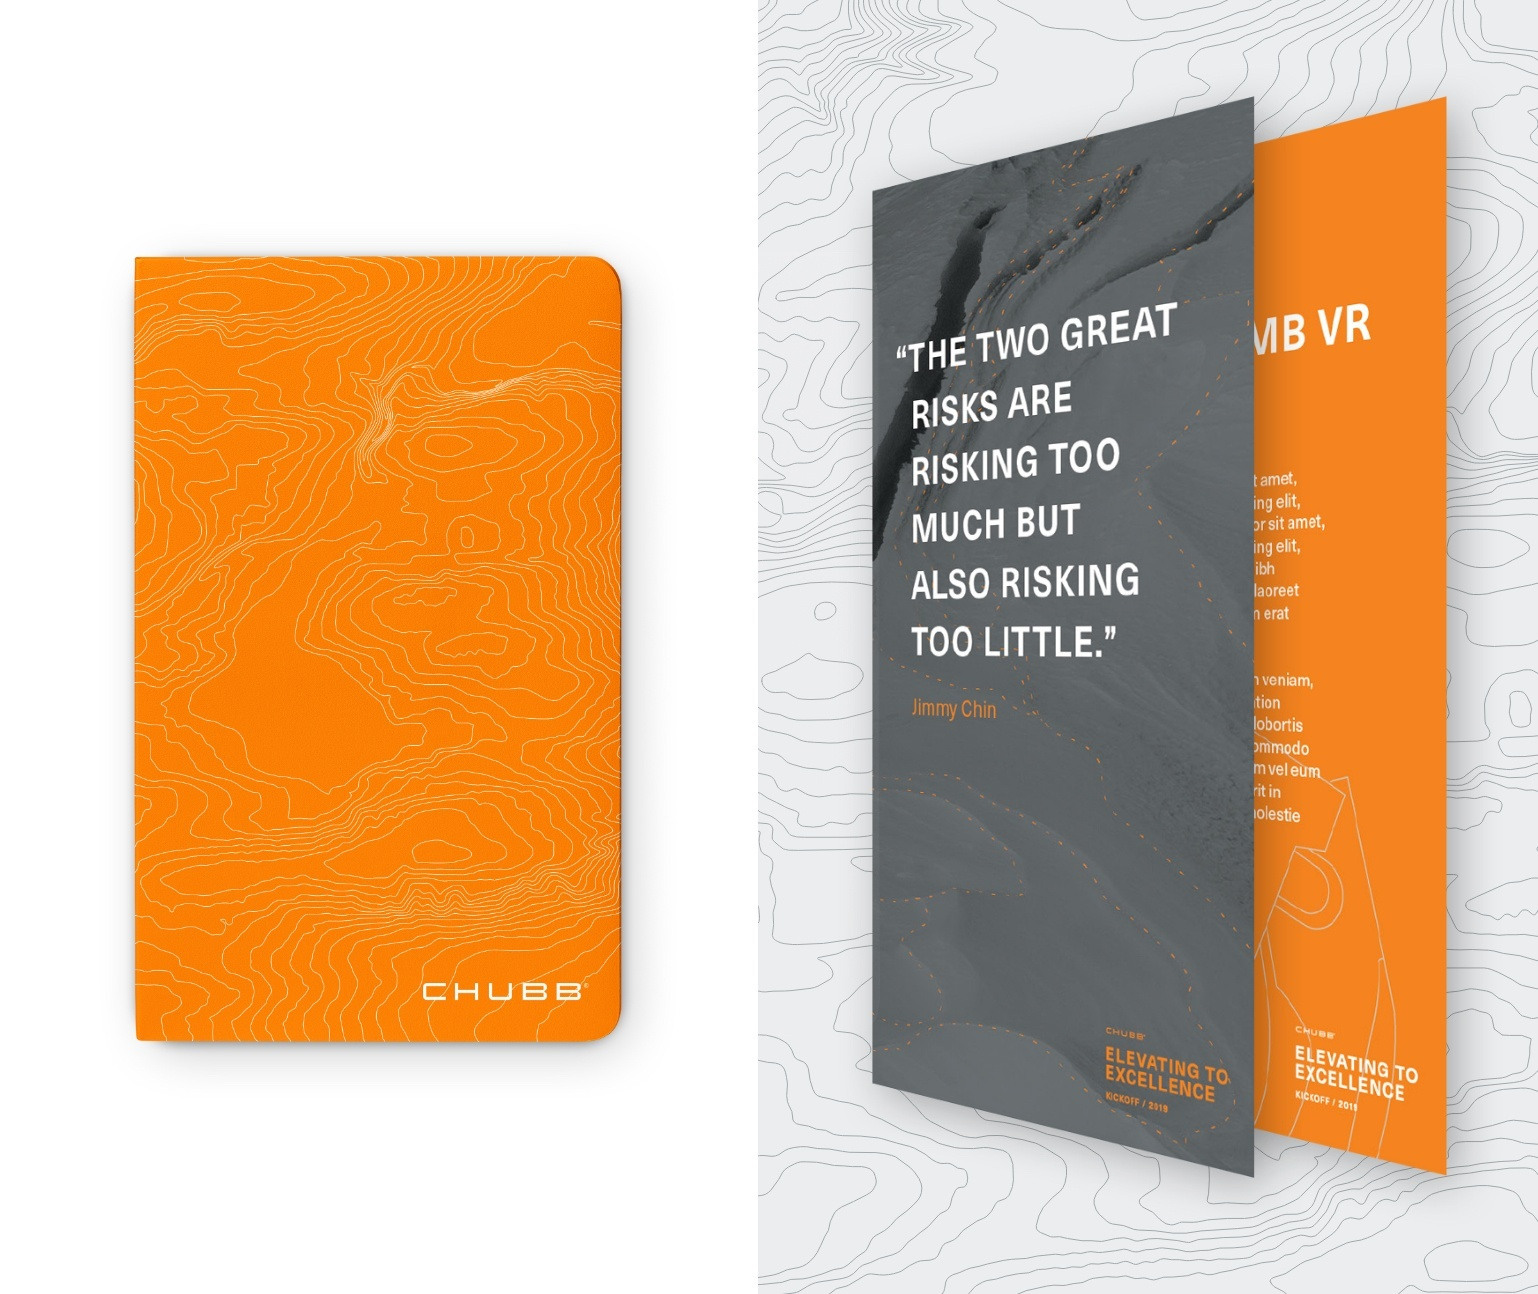 Orange notebook and two posters shown at an angle